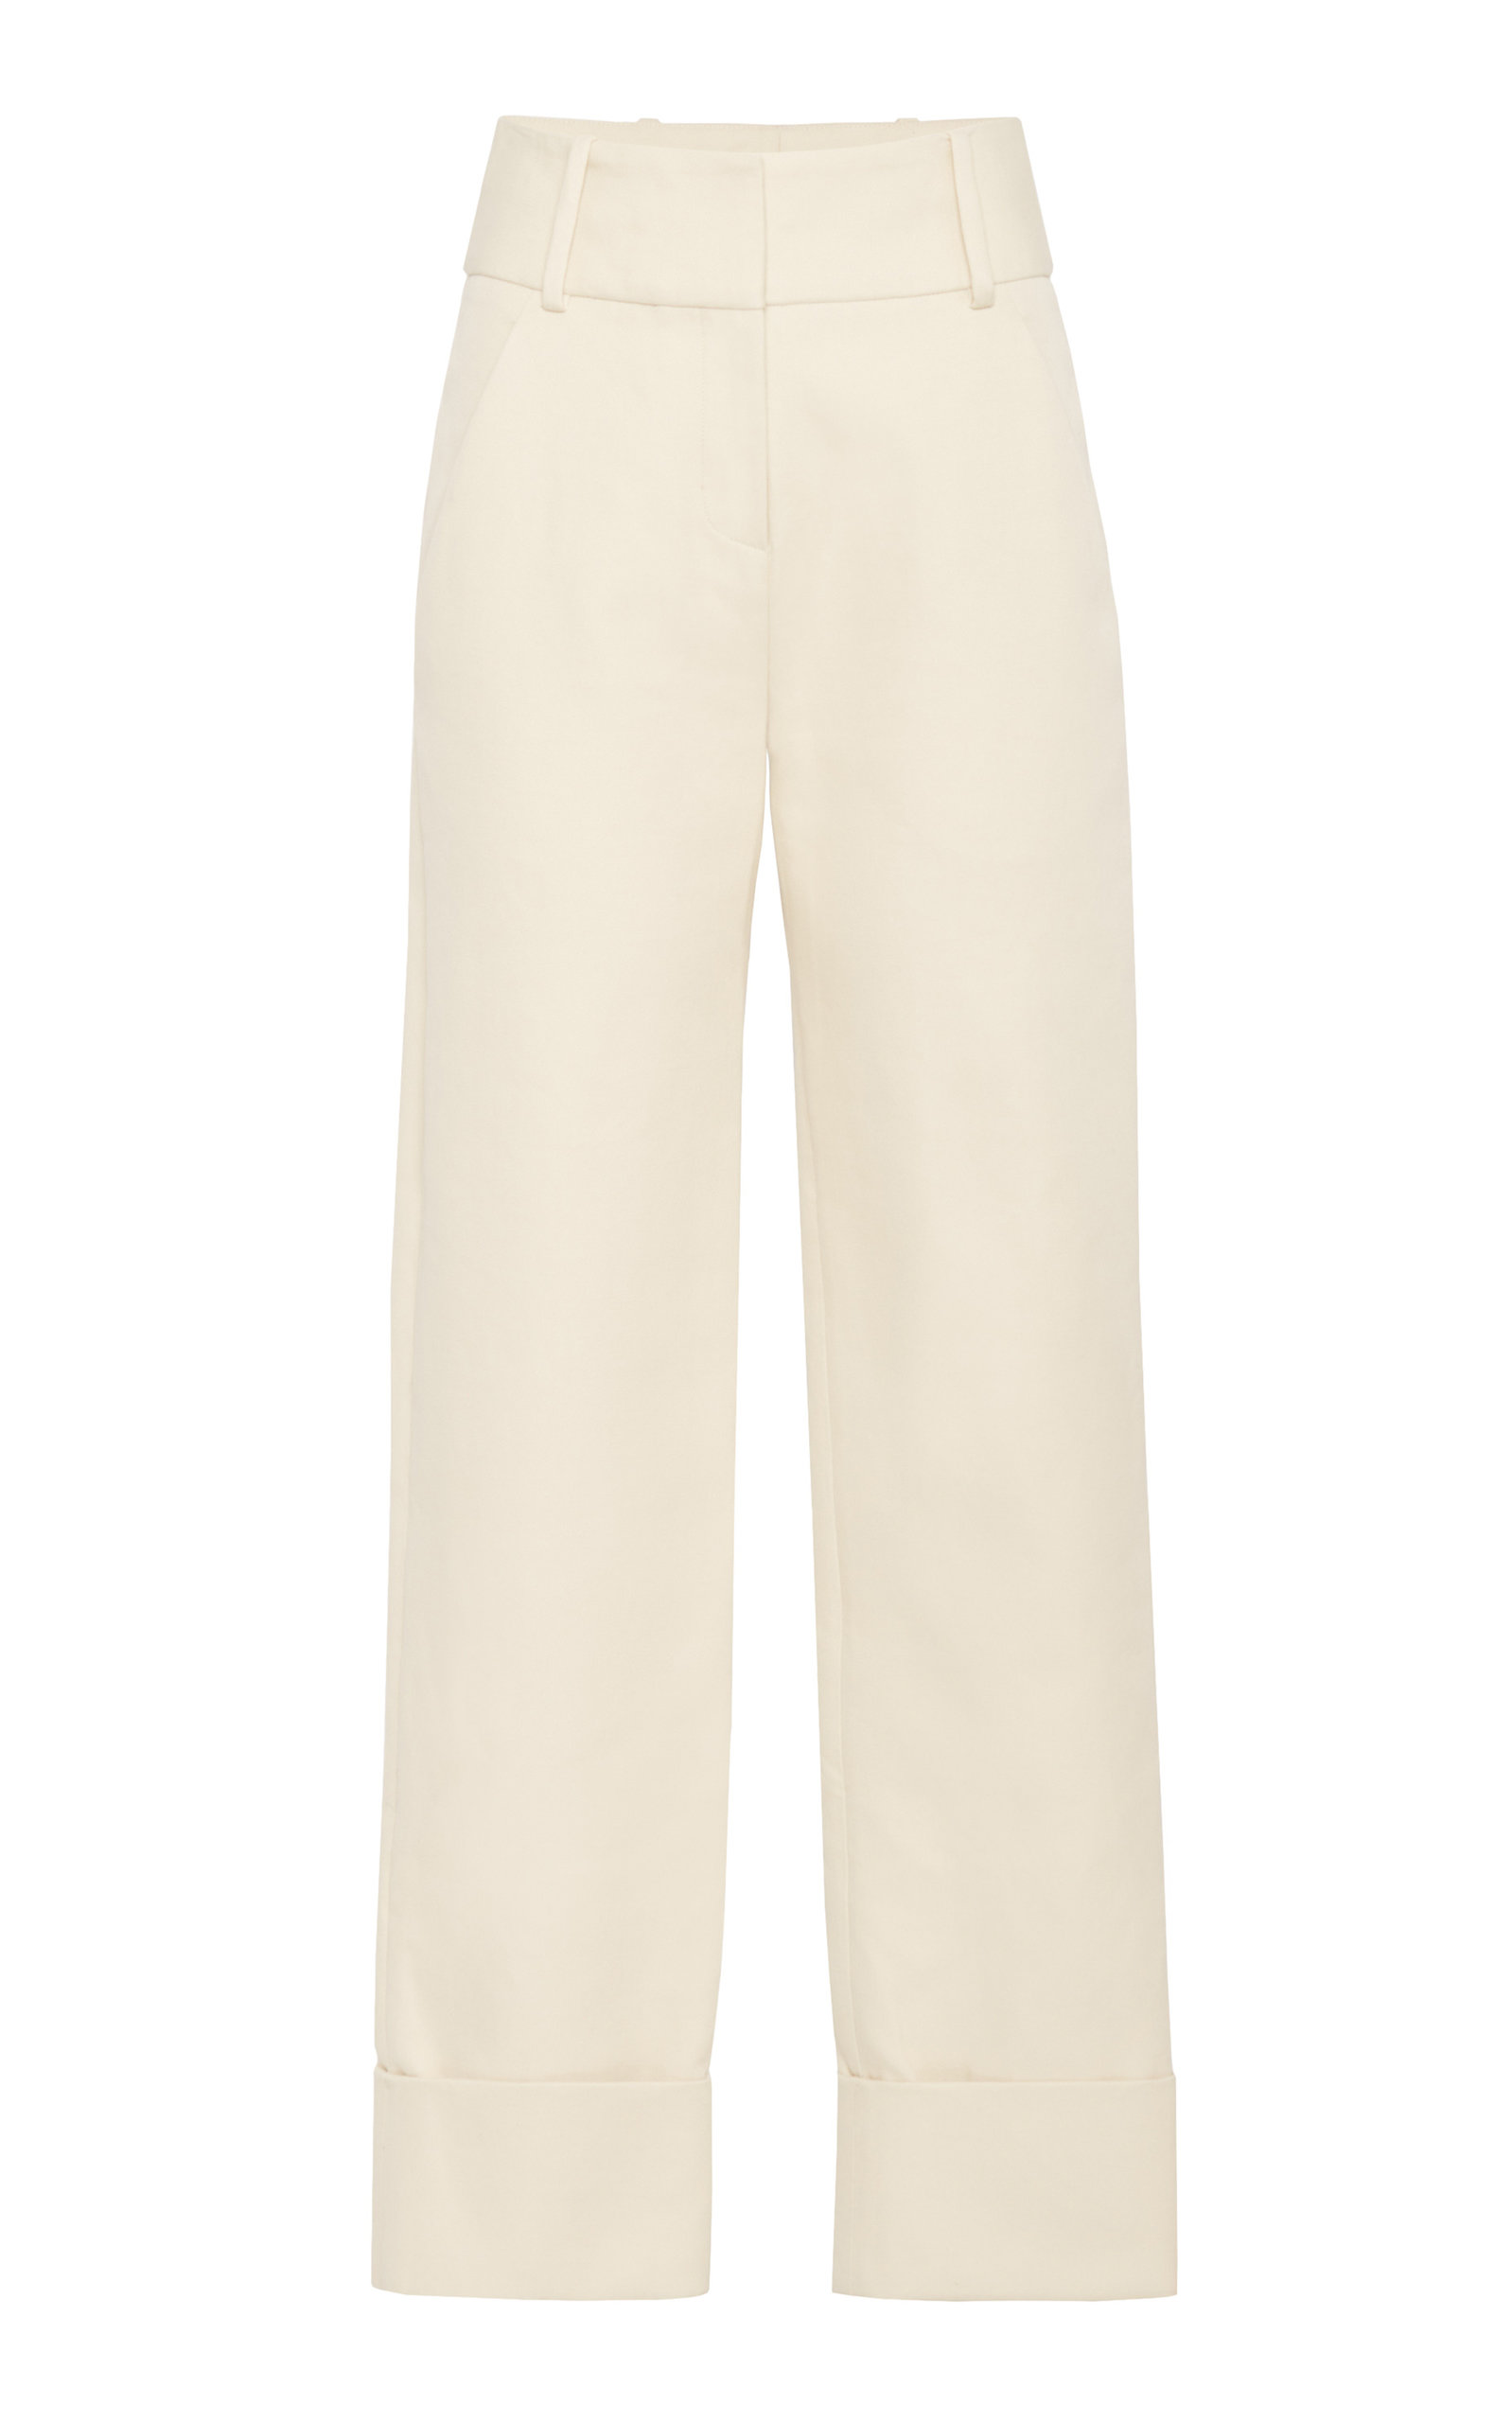 MARINA MOSCONE PAINTER'S TAILORED CUFFED TROUSER